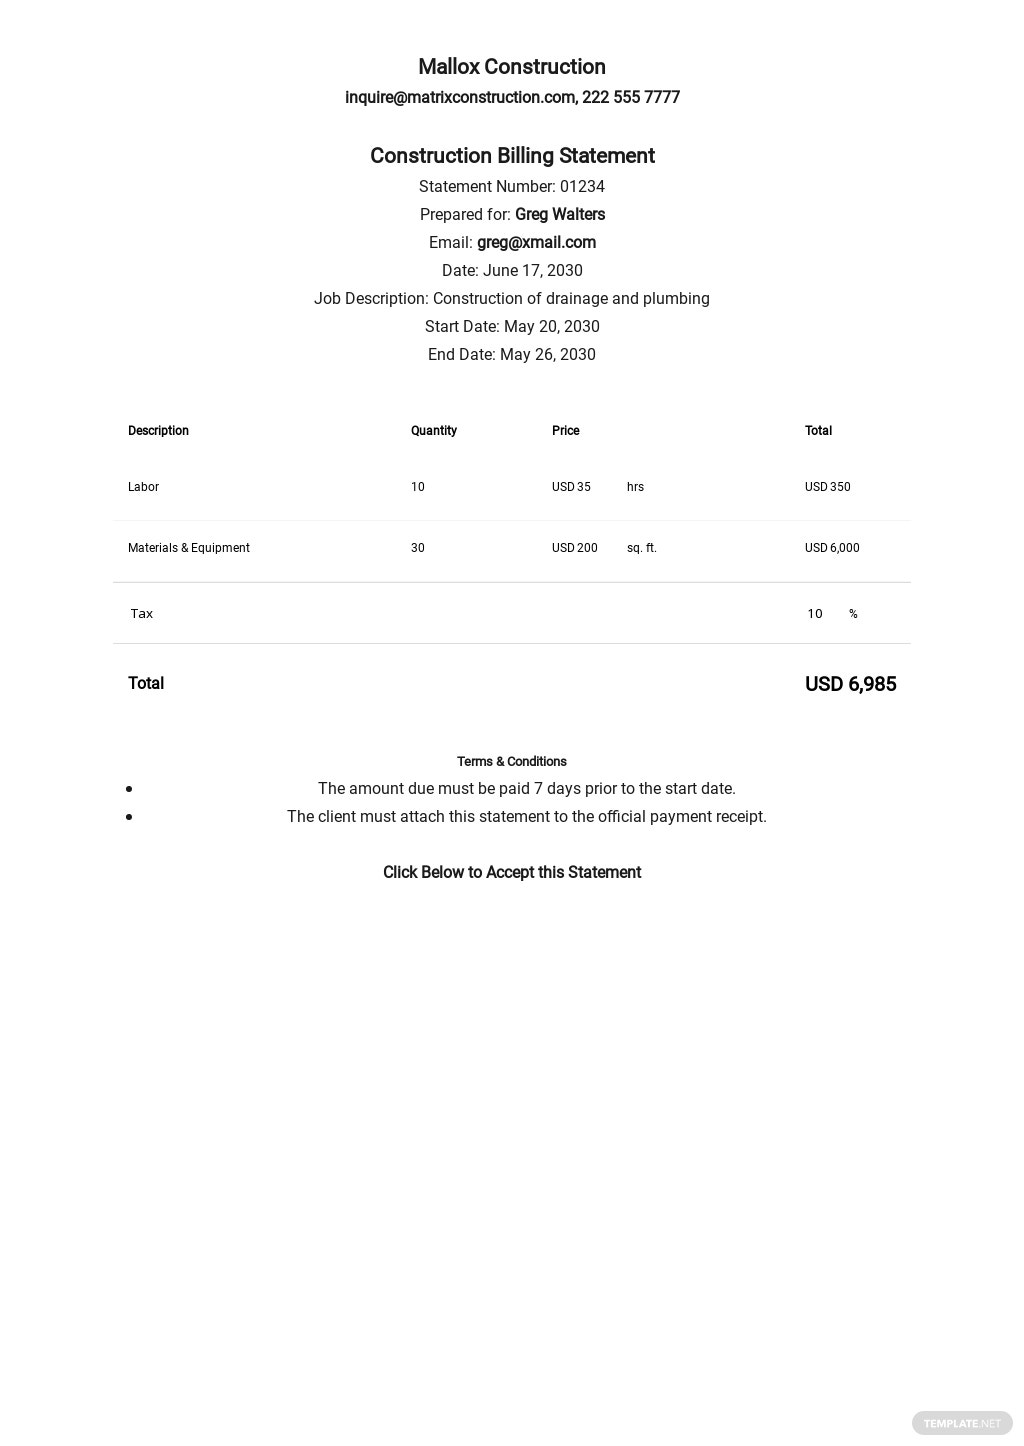 Sample Construction Billing Statement Template